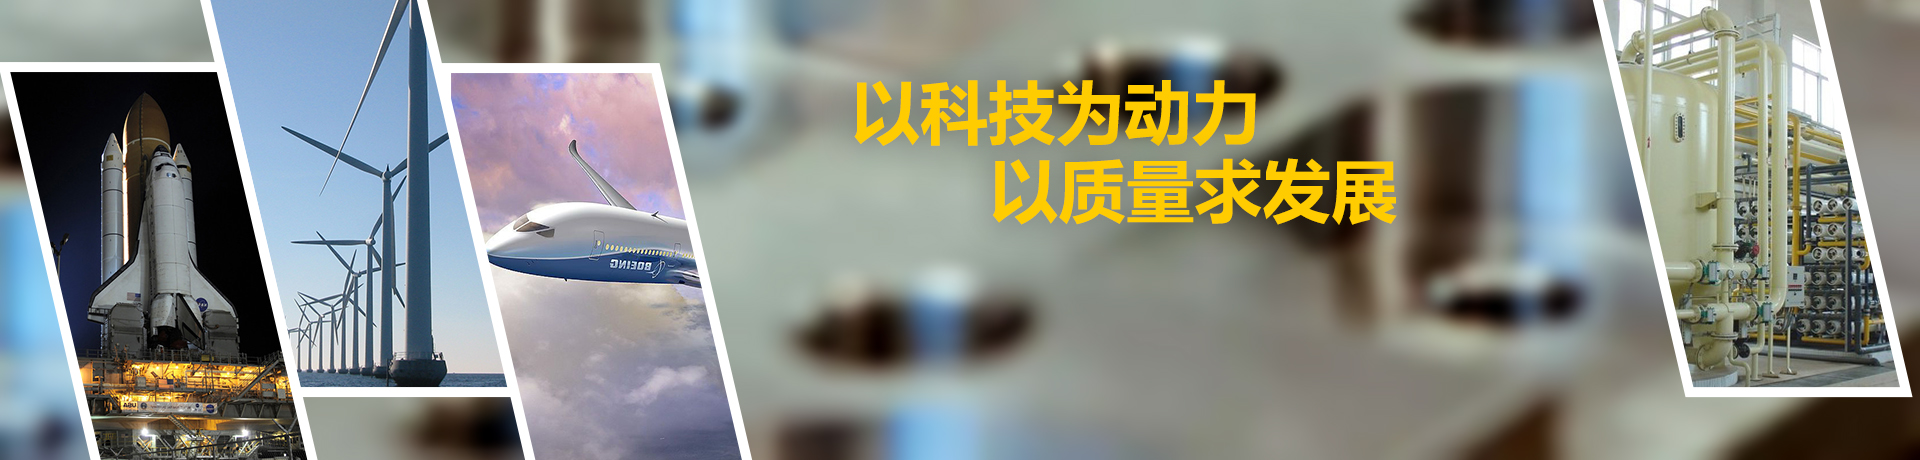 ronghao-banner1